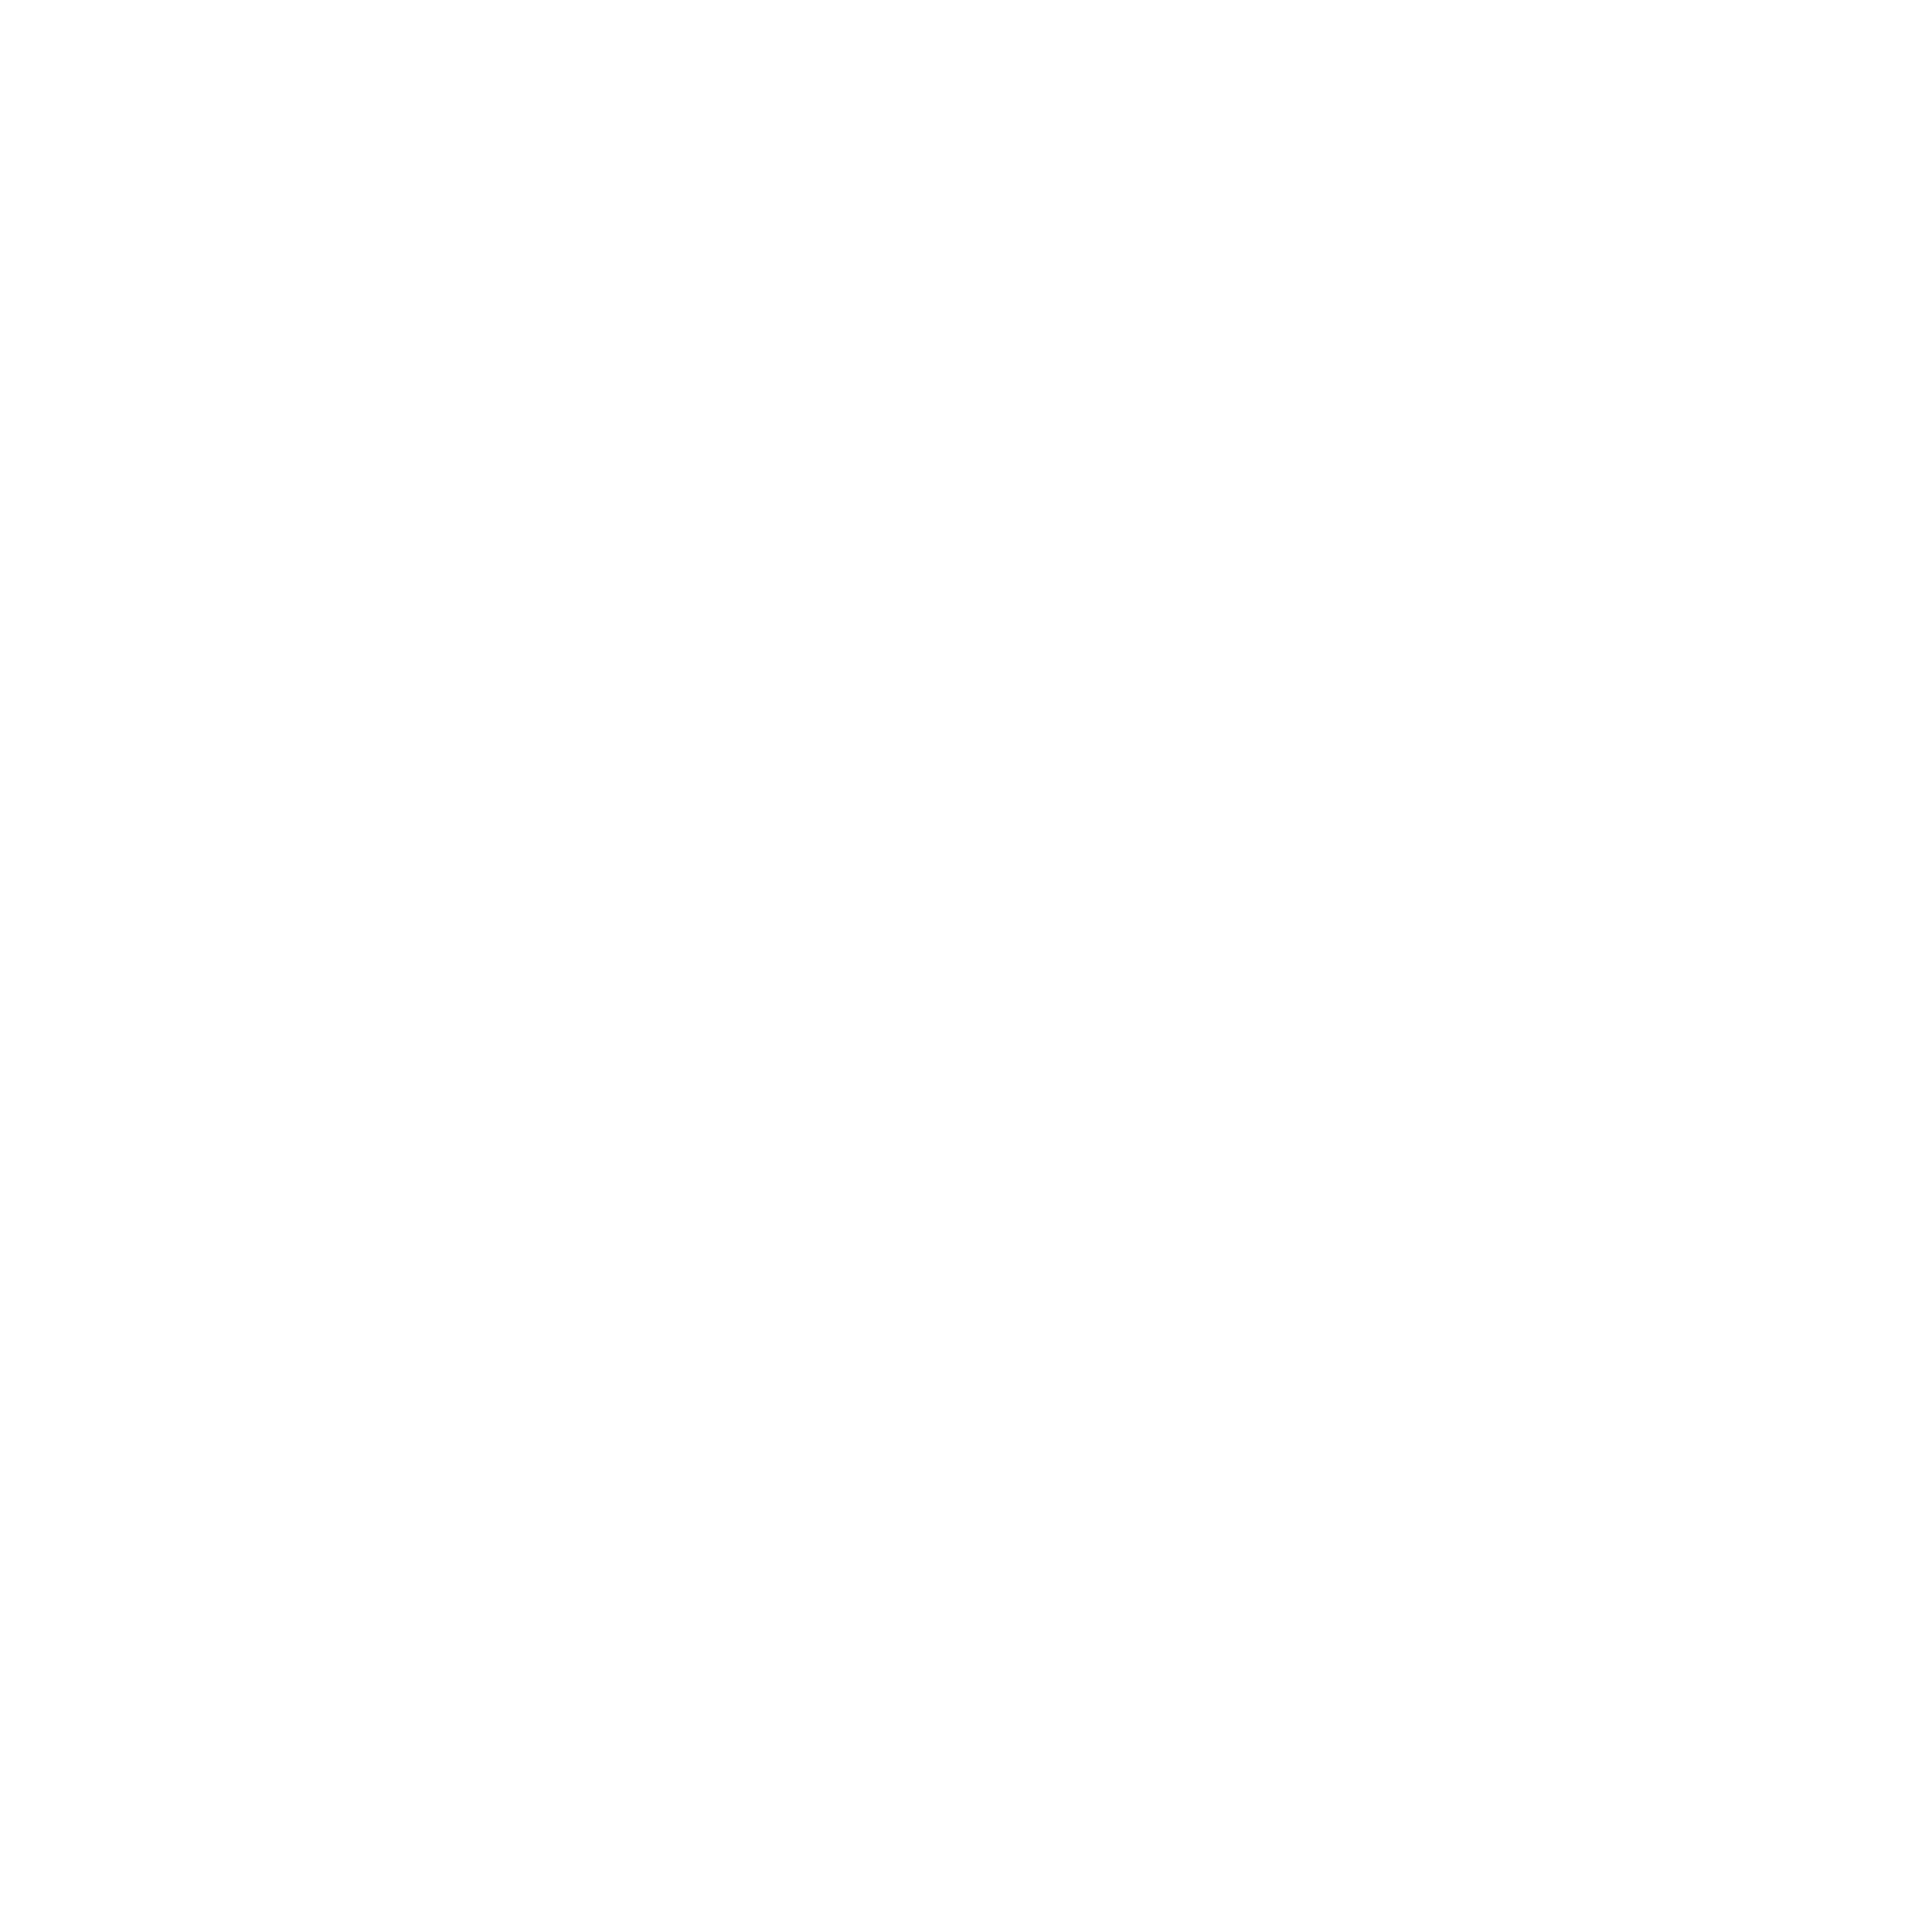 Hip business logo about boomers!